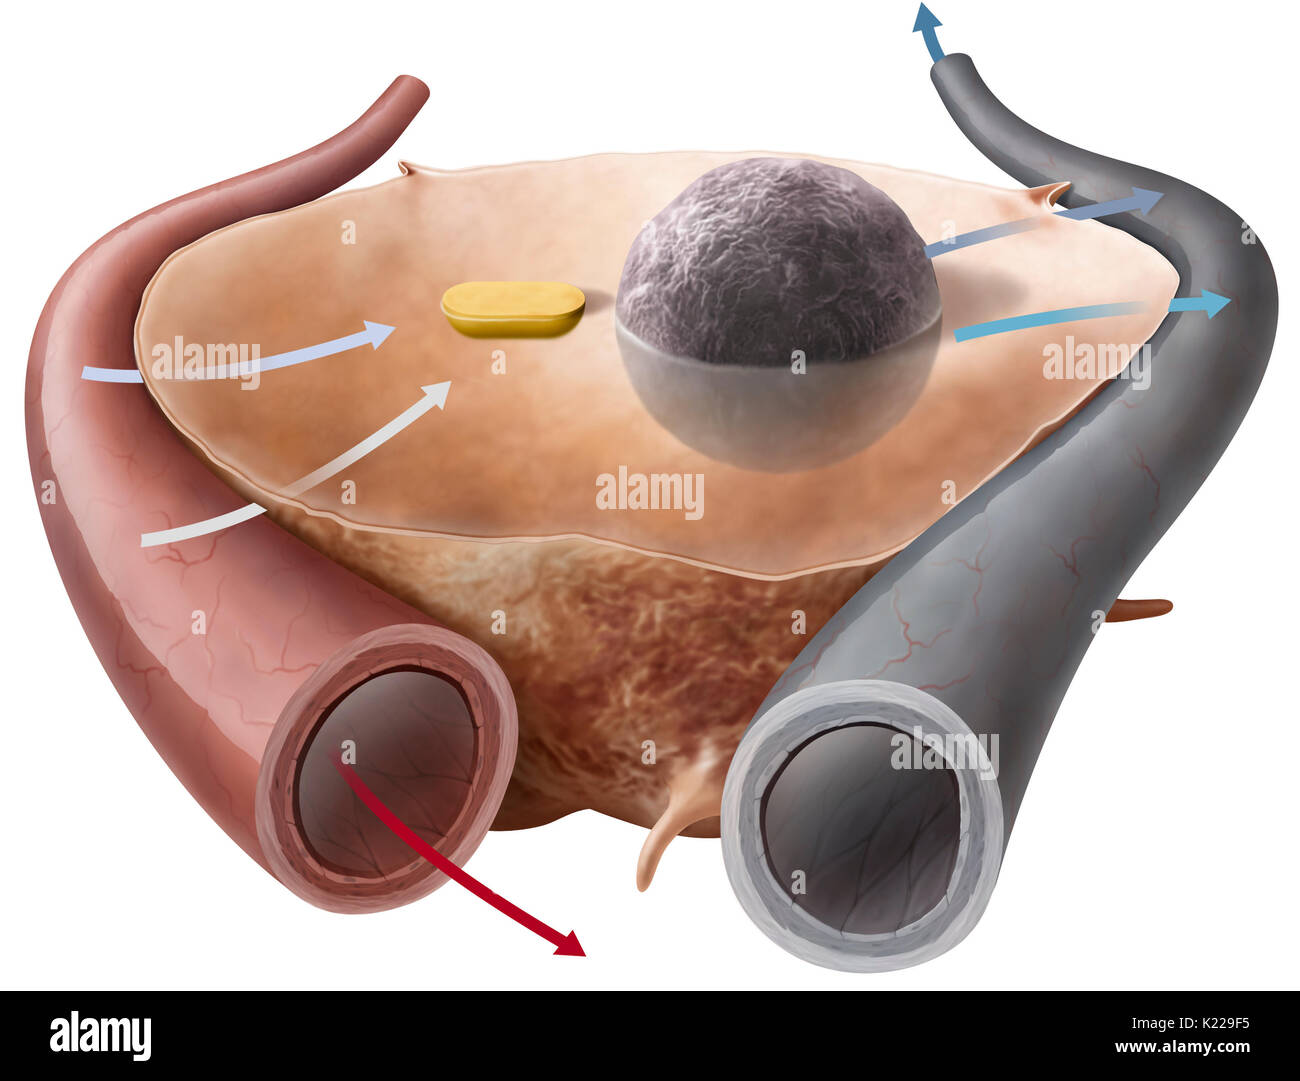 Metabolism is the collection of biochemical reactions that occur in the cells and ensure the functioning of the body. It uses the nutrients provided during digestion and the oxygen supplied by respiration. - Stock Image